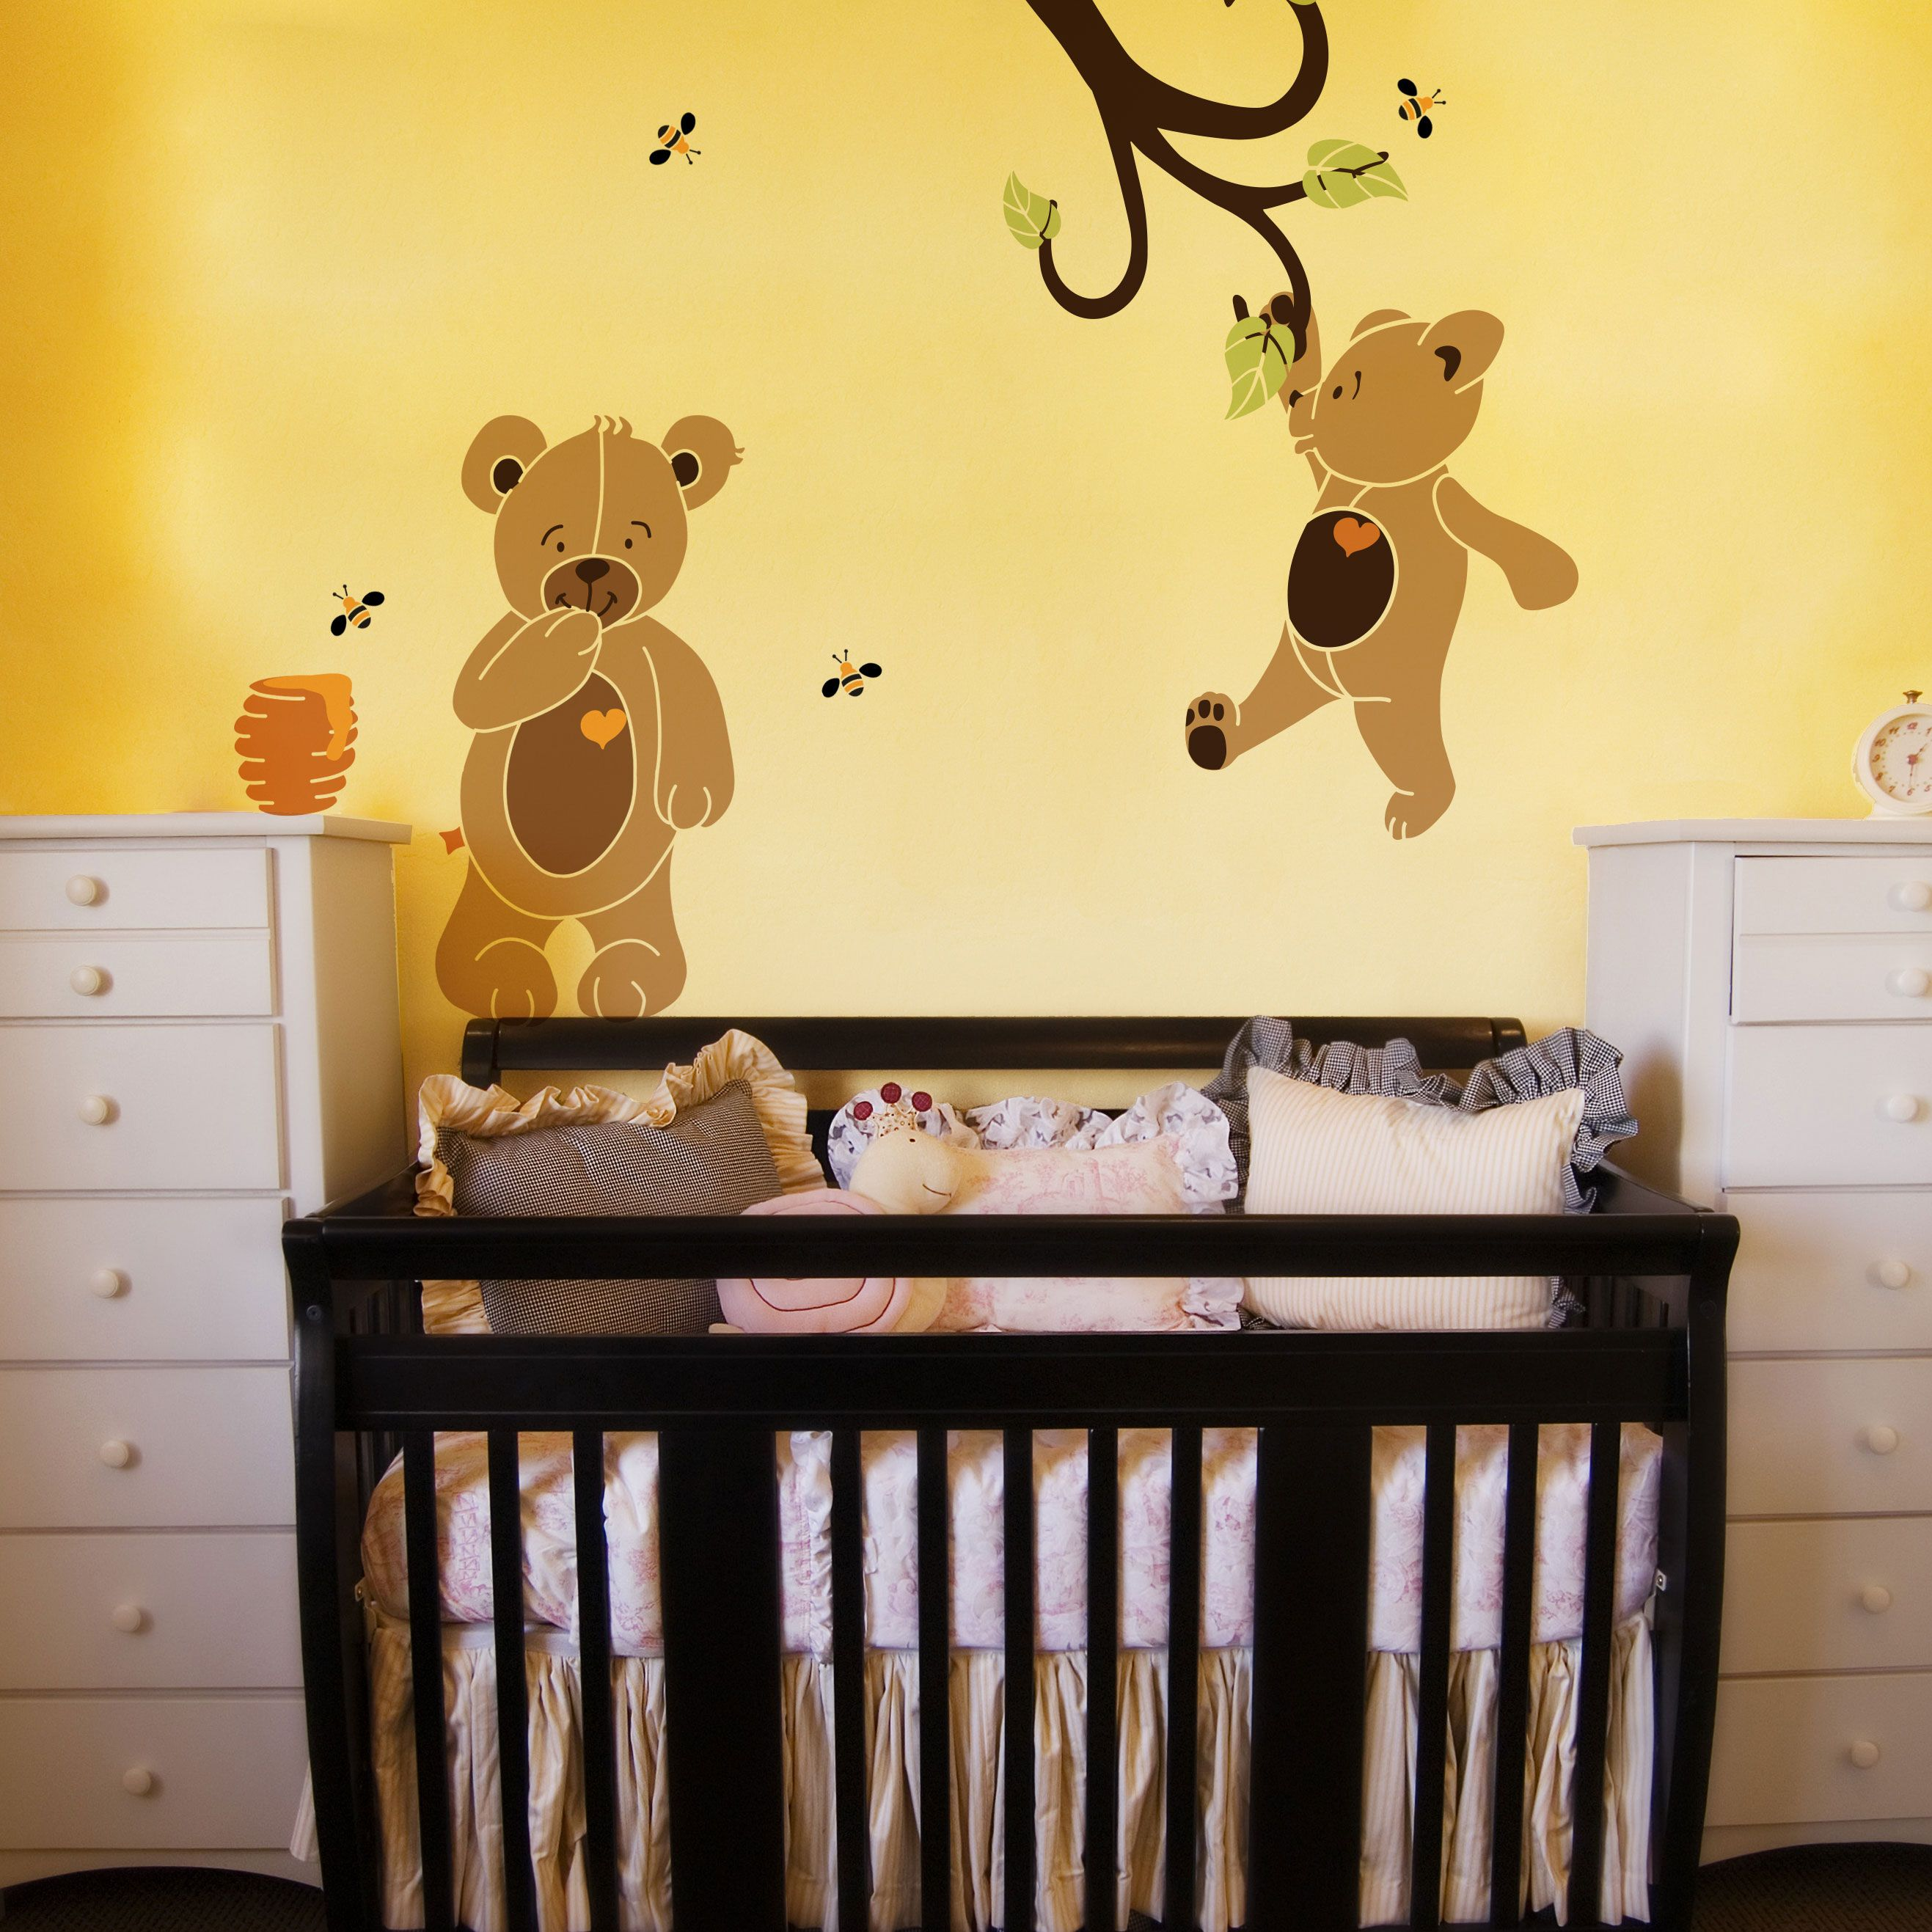 Stencil Kit Includes: 2 Teddy Bear Stencils, 1 Branch Stencil, 3 Leaf  Stencils, 1 Beehive Stencil And 2 Bee Stencils   Paint Your Own Teddy Bear Wall  Mural ... Part 98